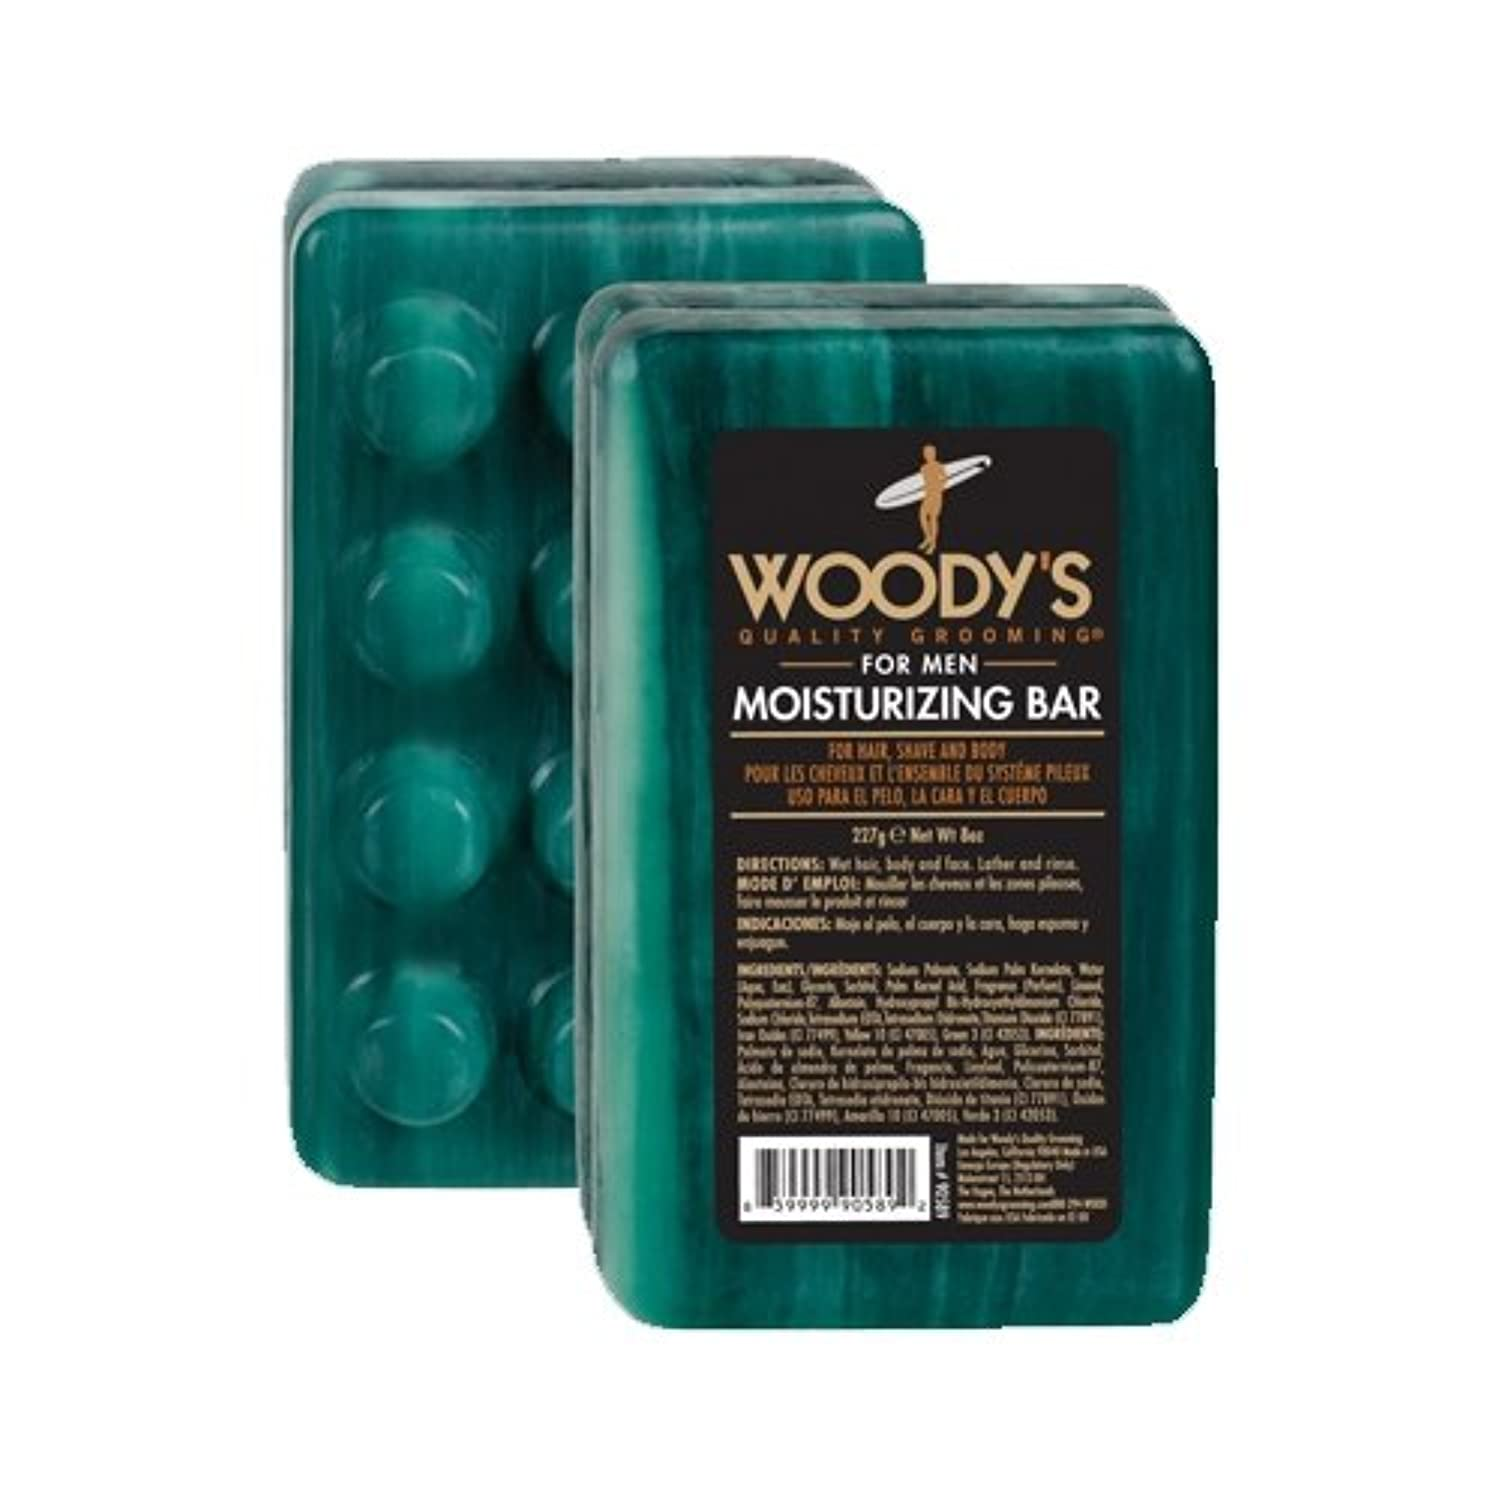 消費するページ選挙Woody's Moisturizing Bar 8oz